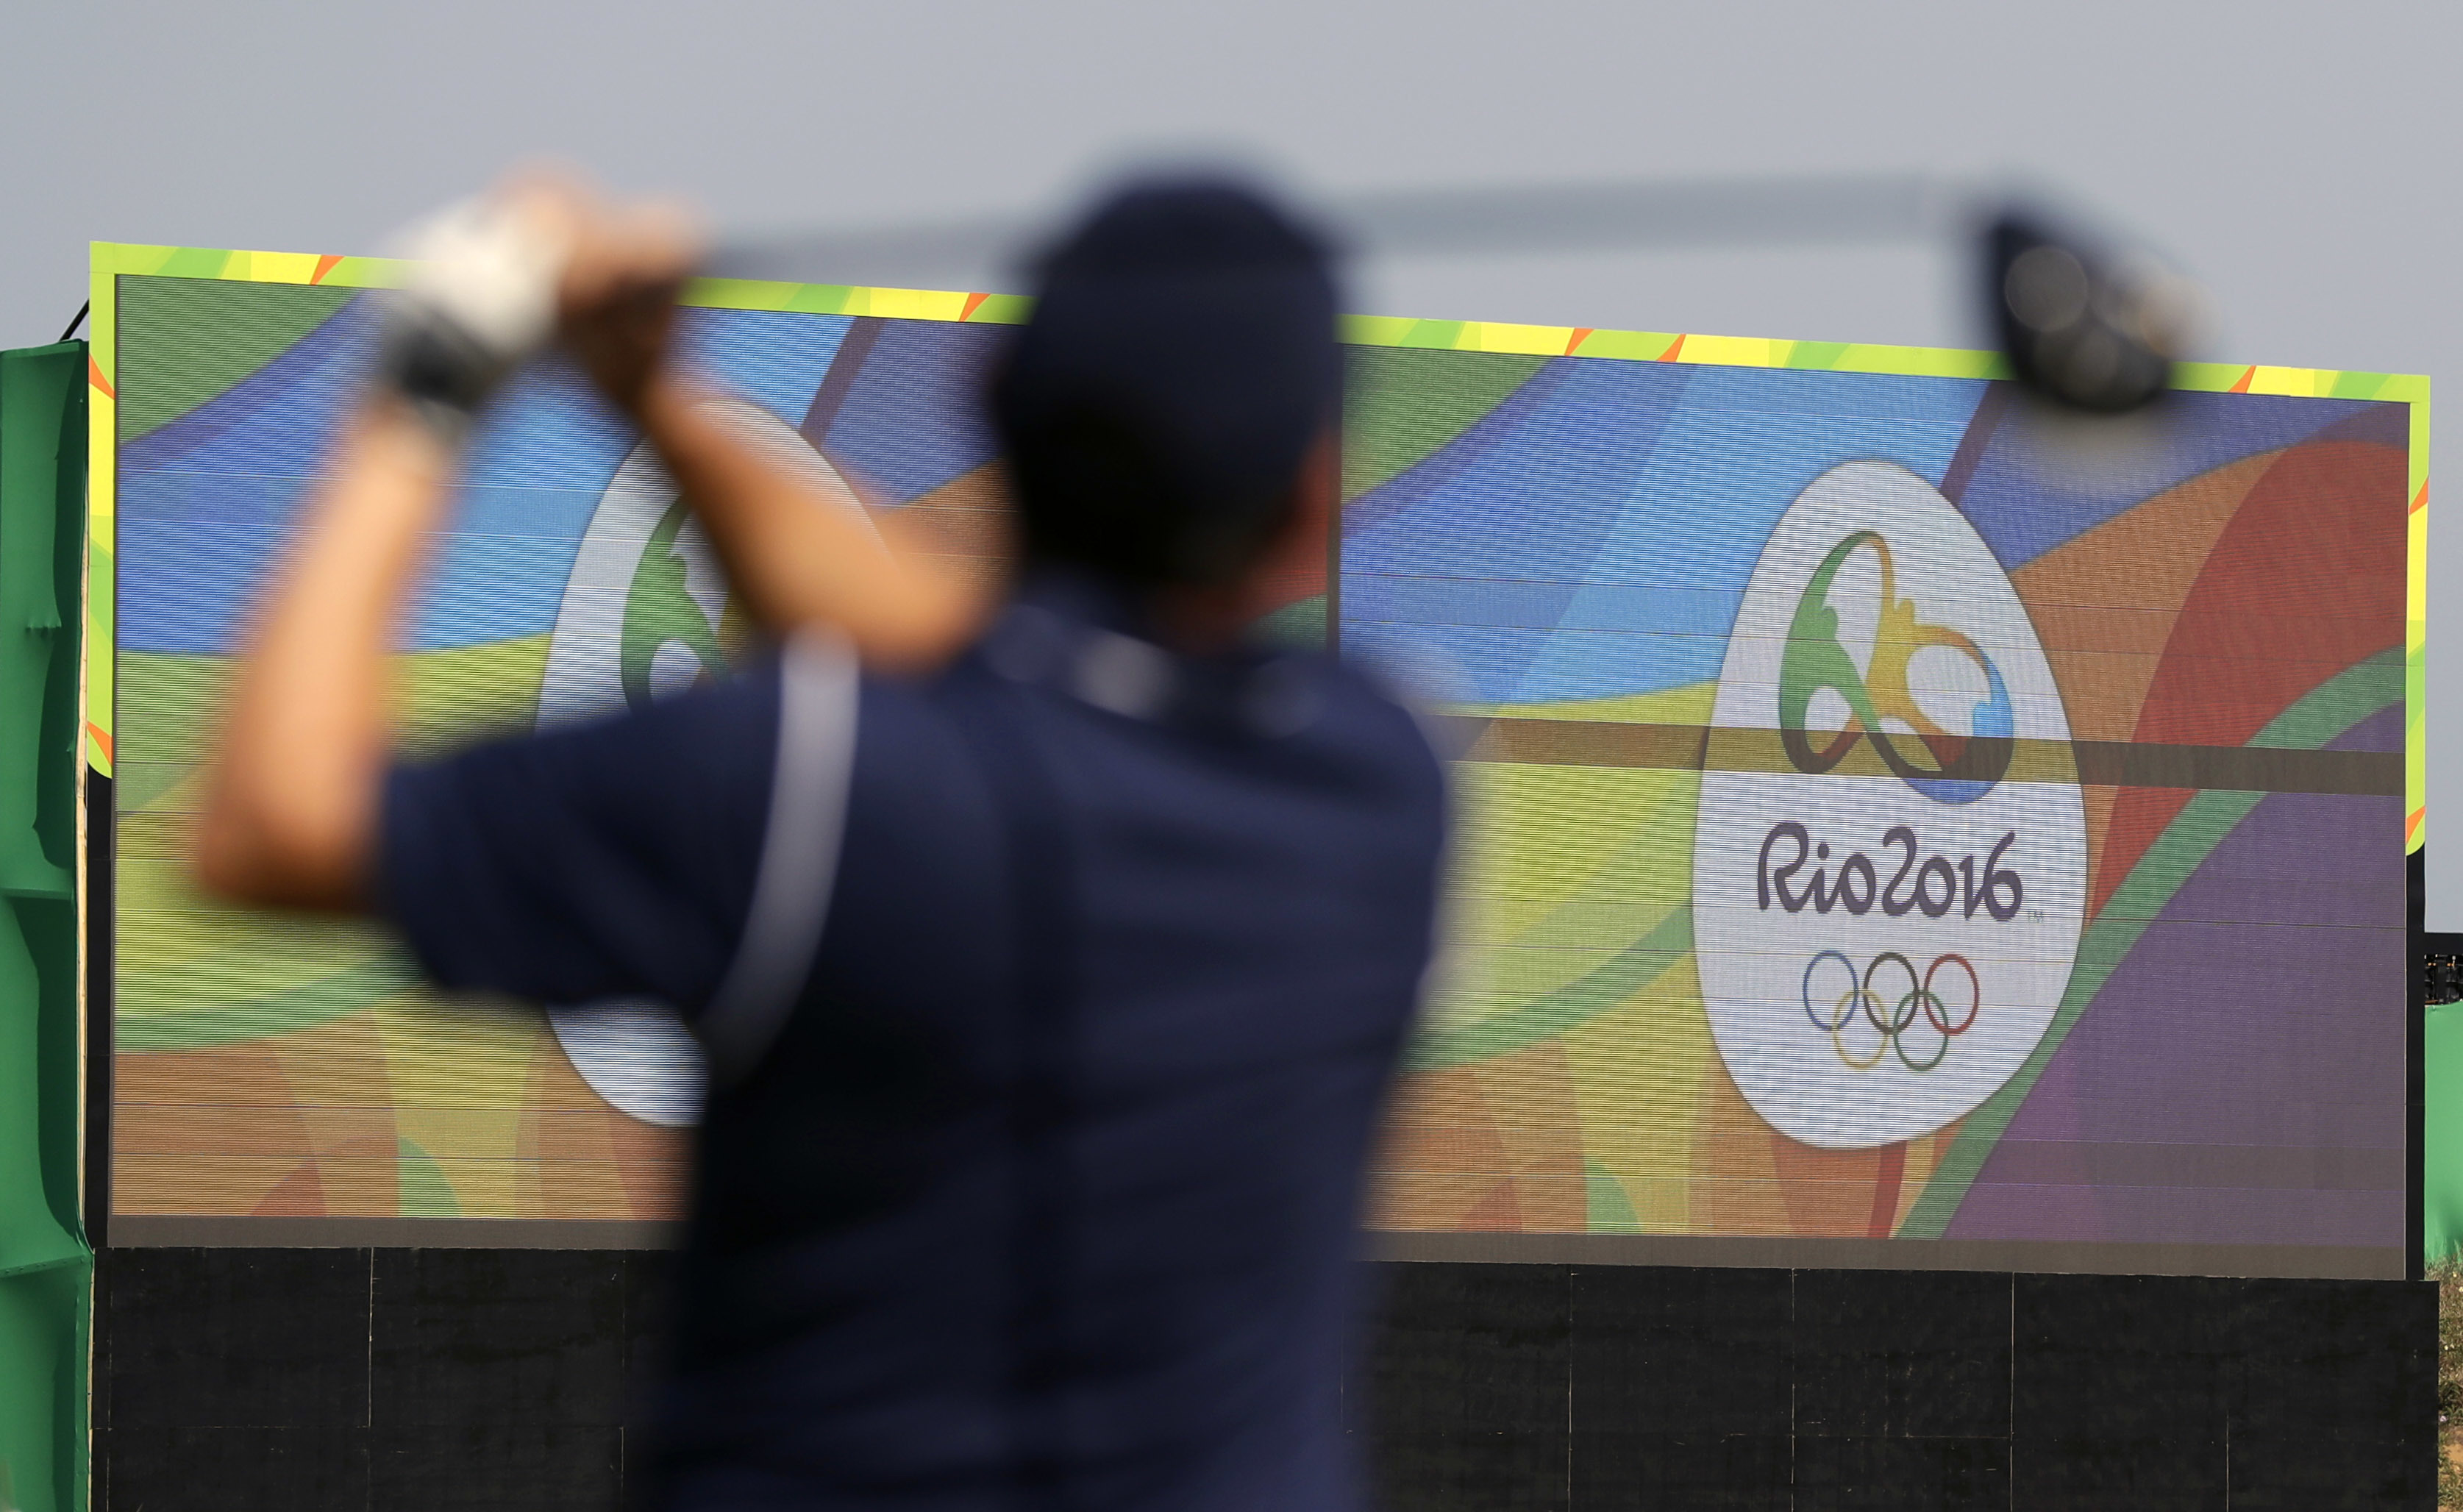 Brazil's Adilson Da Silva, hits from the first tee on the Olympic golf course during a practice round for the 2016 Summer Olympics in Rio de Janeiro, Brazil, Friday, Aug. 5, 2016. (AP Photo/Eric Gay)